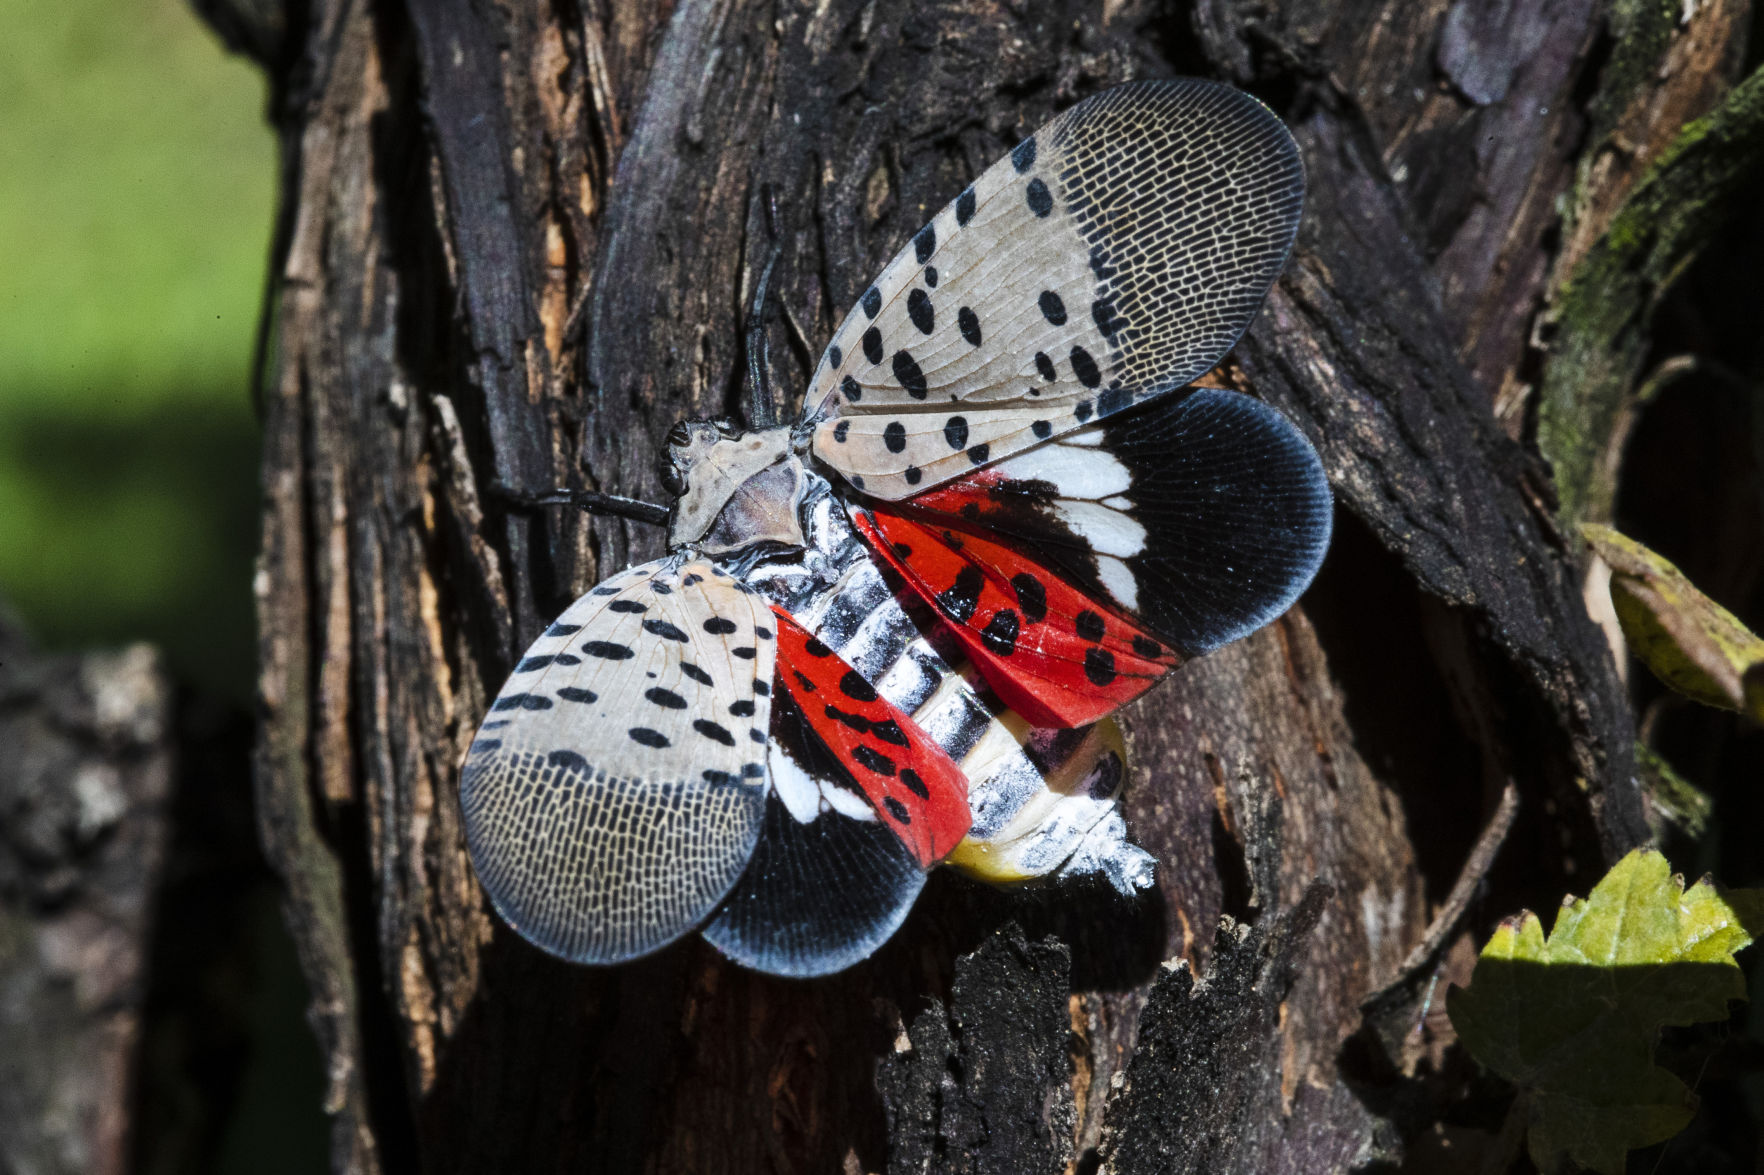 Local conservationists join fight against invasive bug species